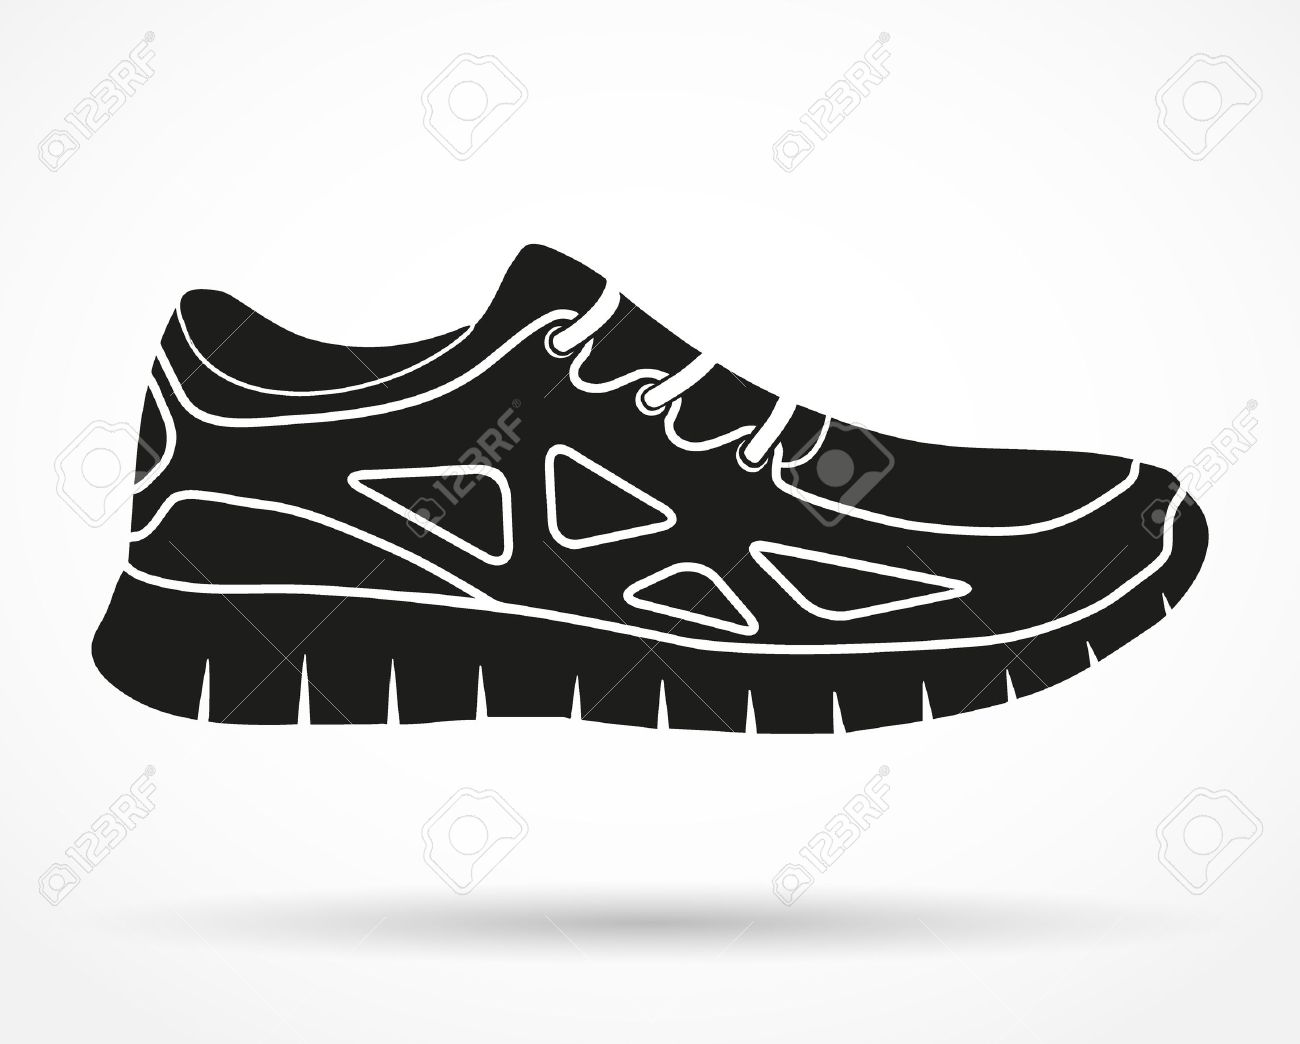 silhouette symbol of shoes running and fitness sneakers original rh 123rf com running shoe vector running shoe vector